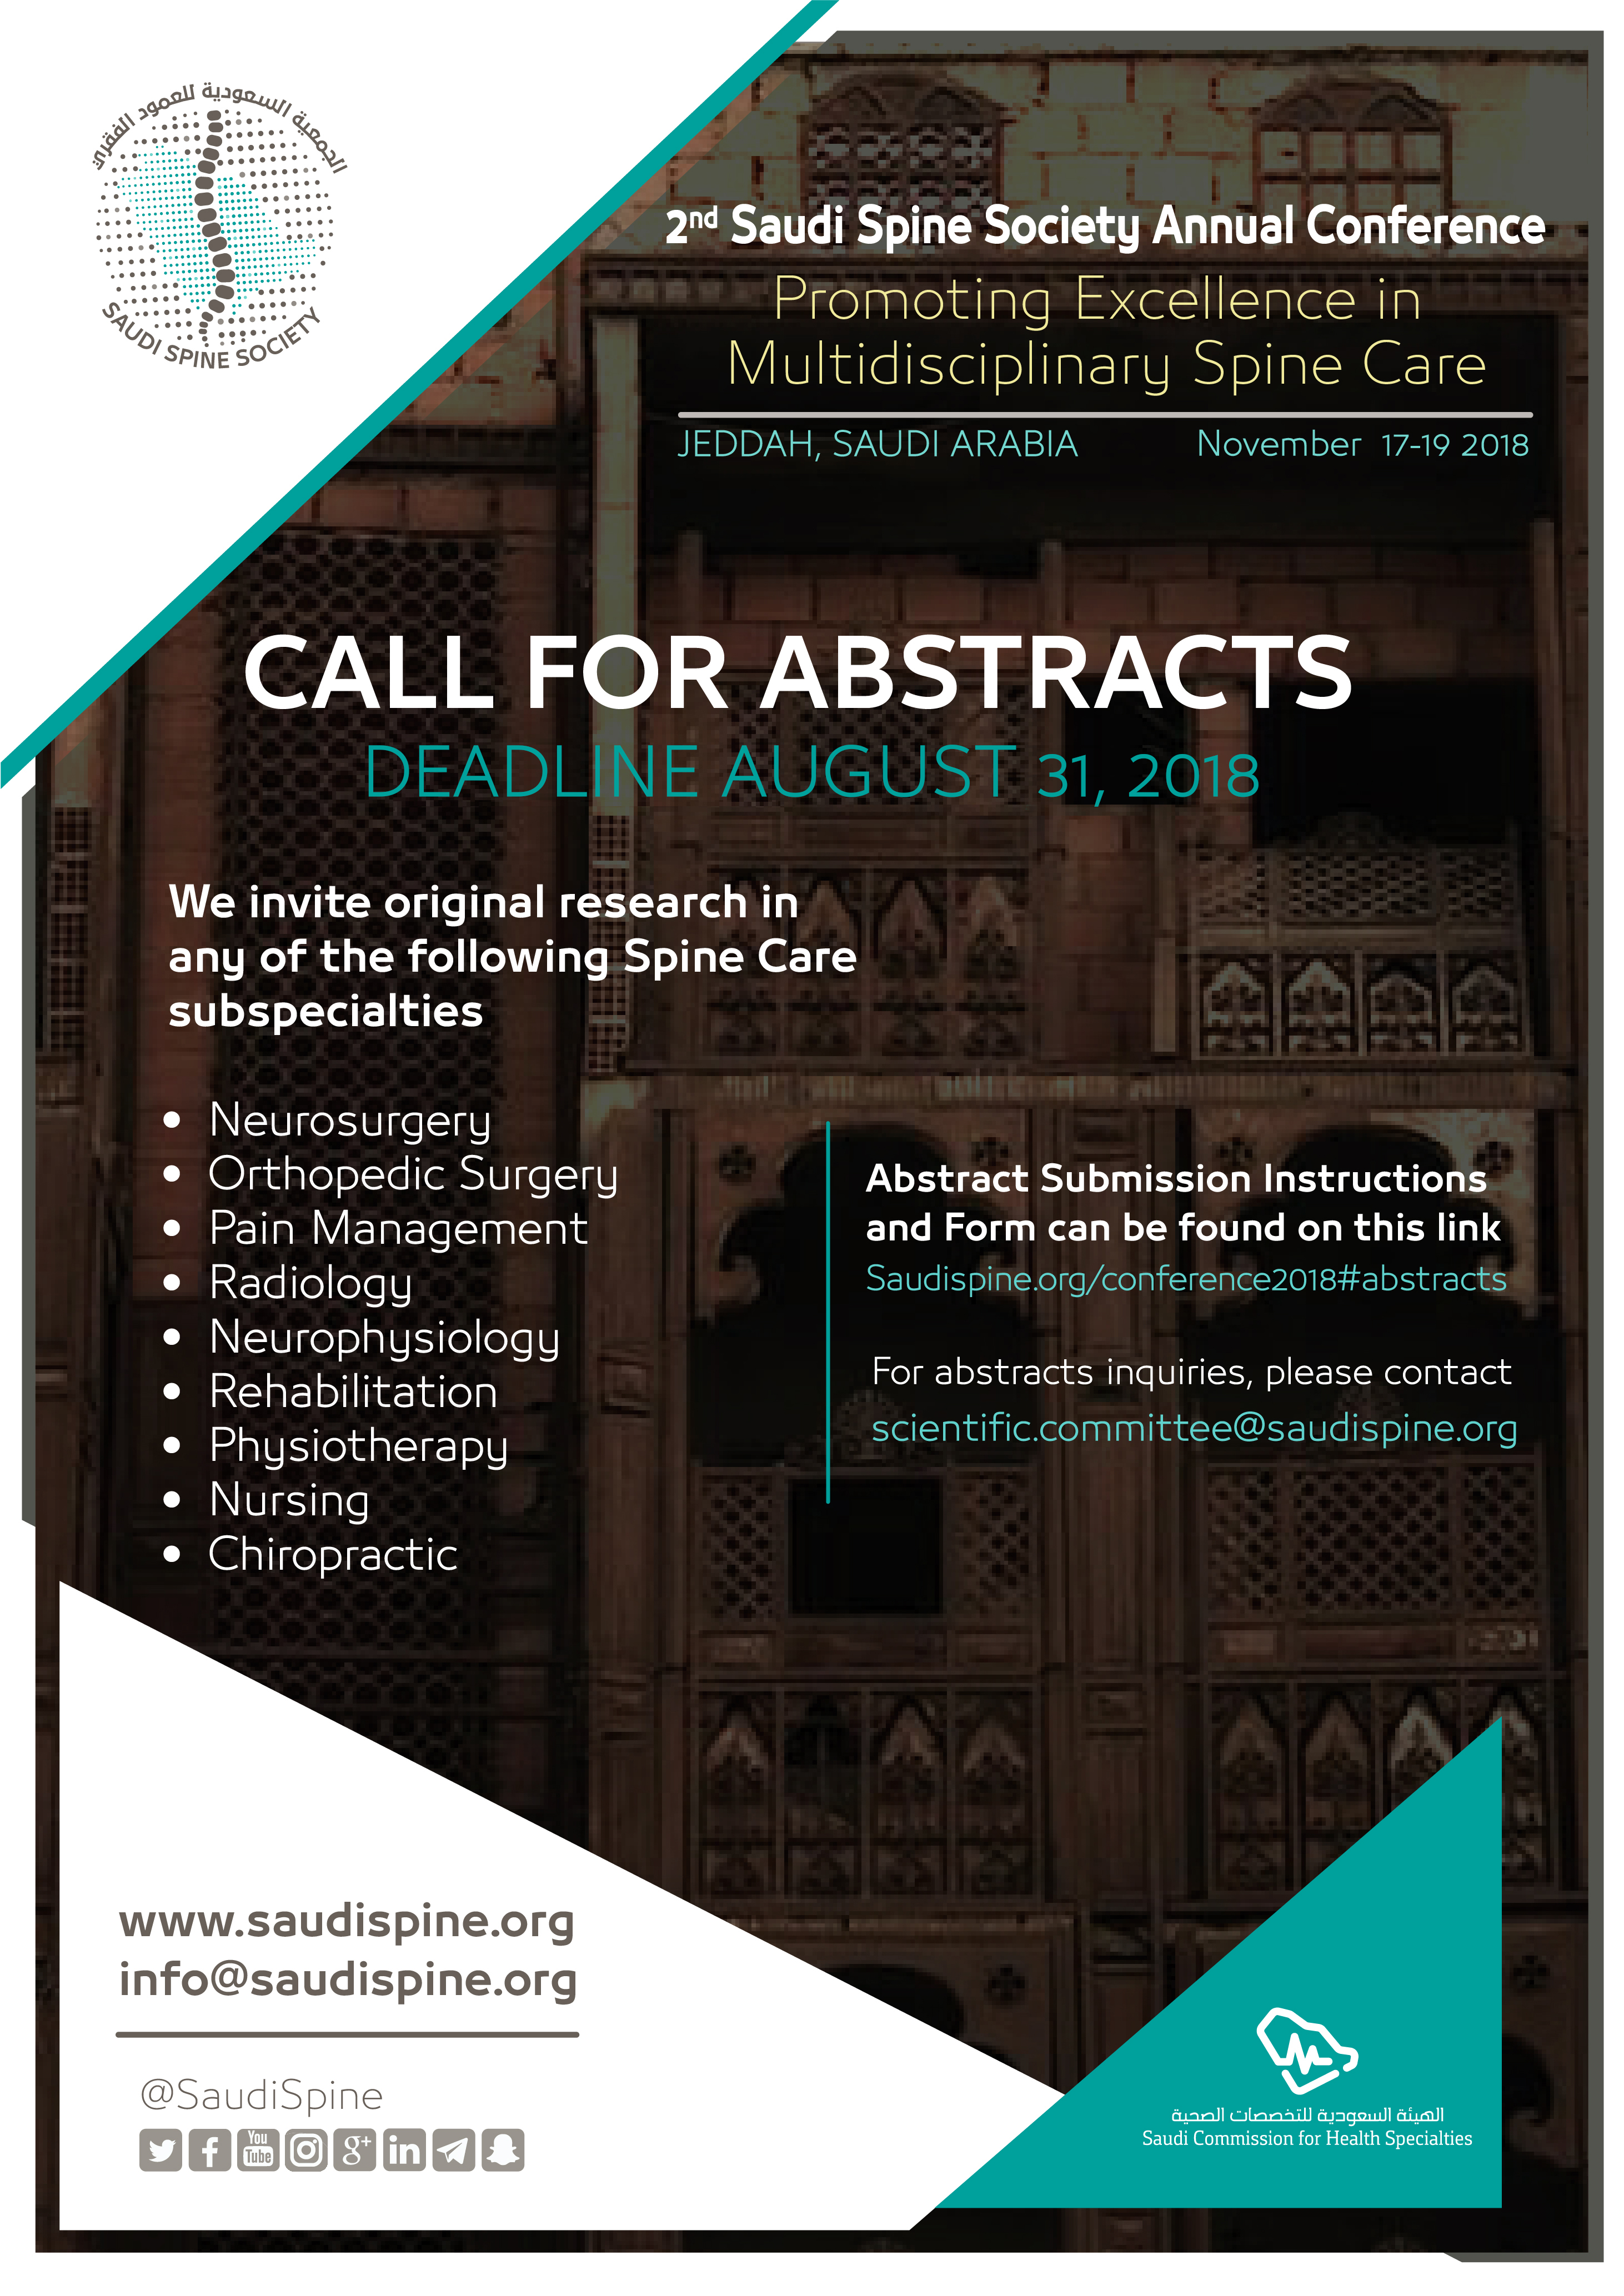 Call For Abstracts Deadline Extension